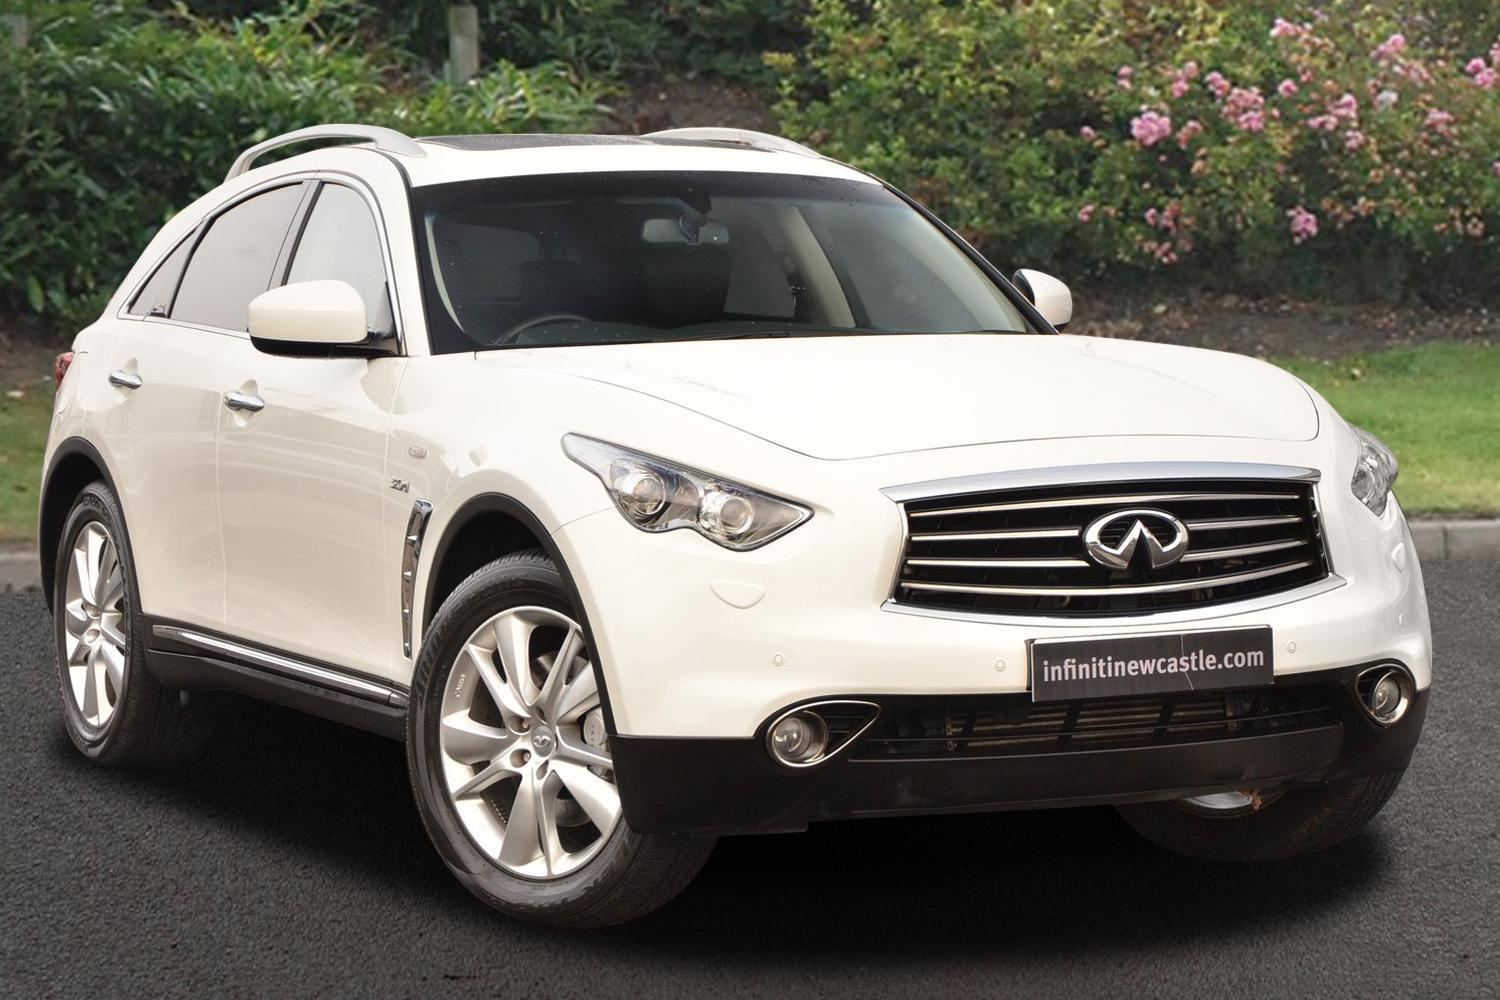 used infiniti qx70 3 0d gt 5dr auto diesel estate for sale newcastle infiniti. Black Bedroom Furniture Sets. Home Design Ideas